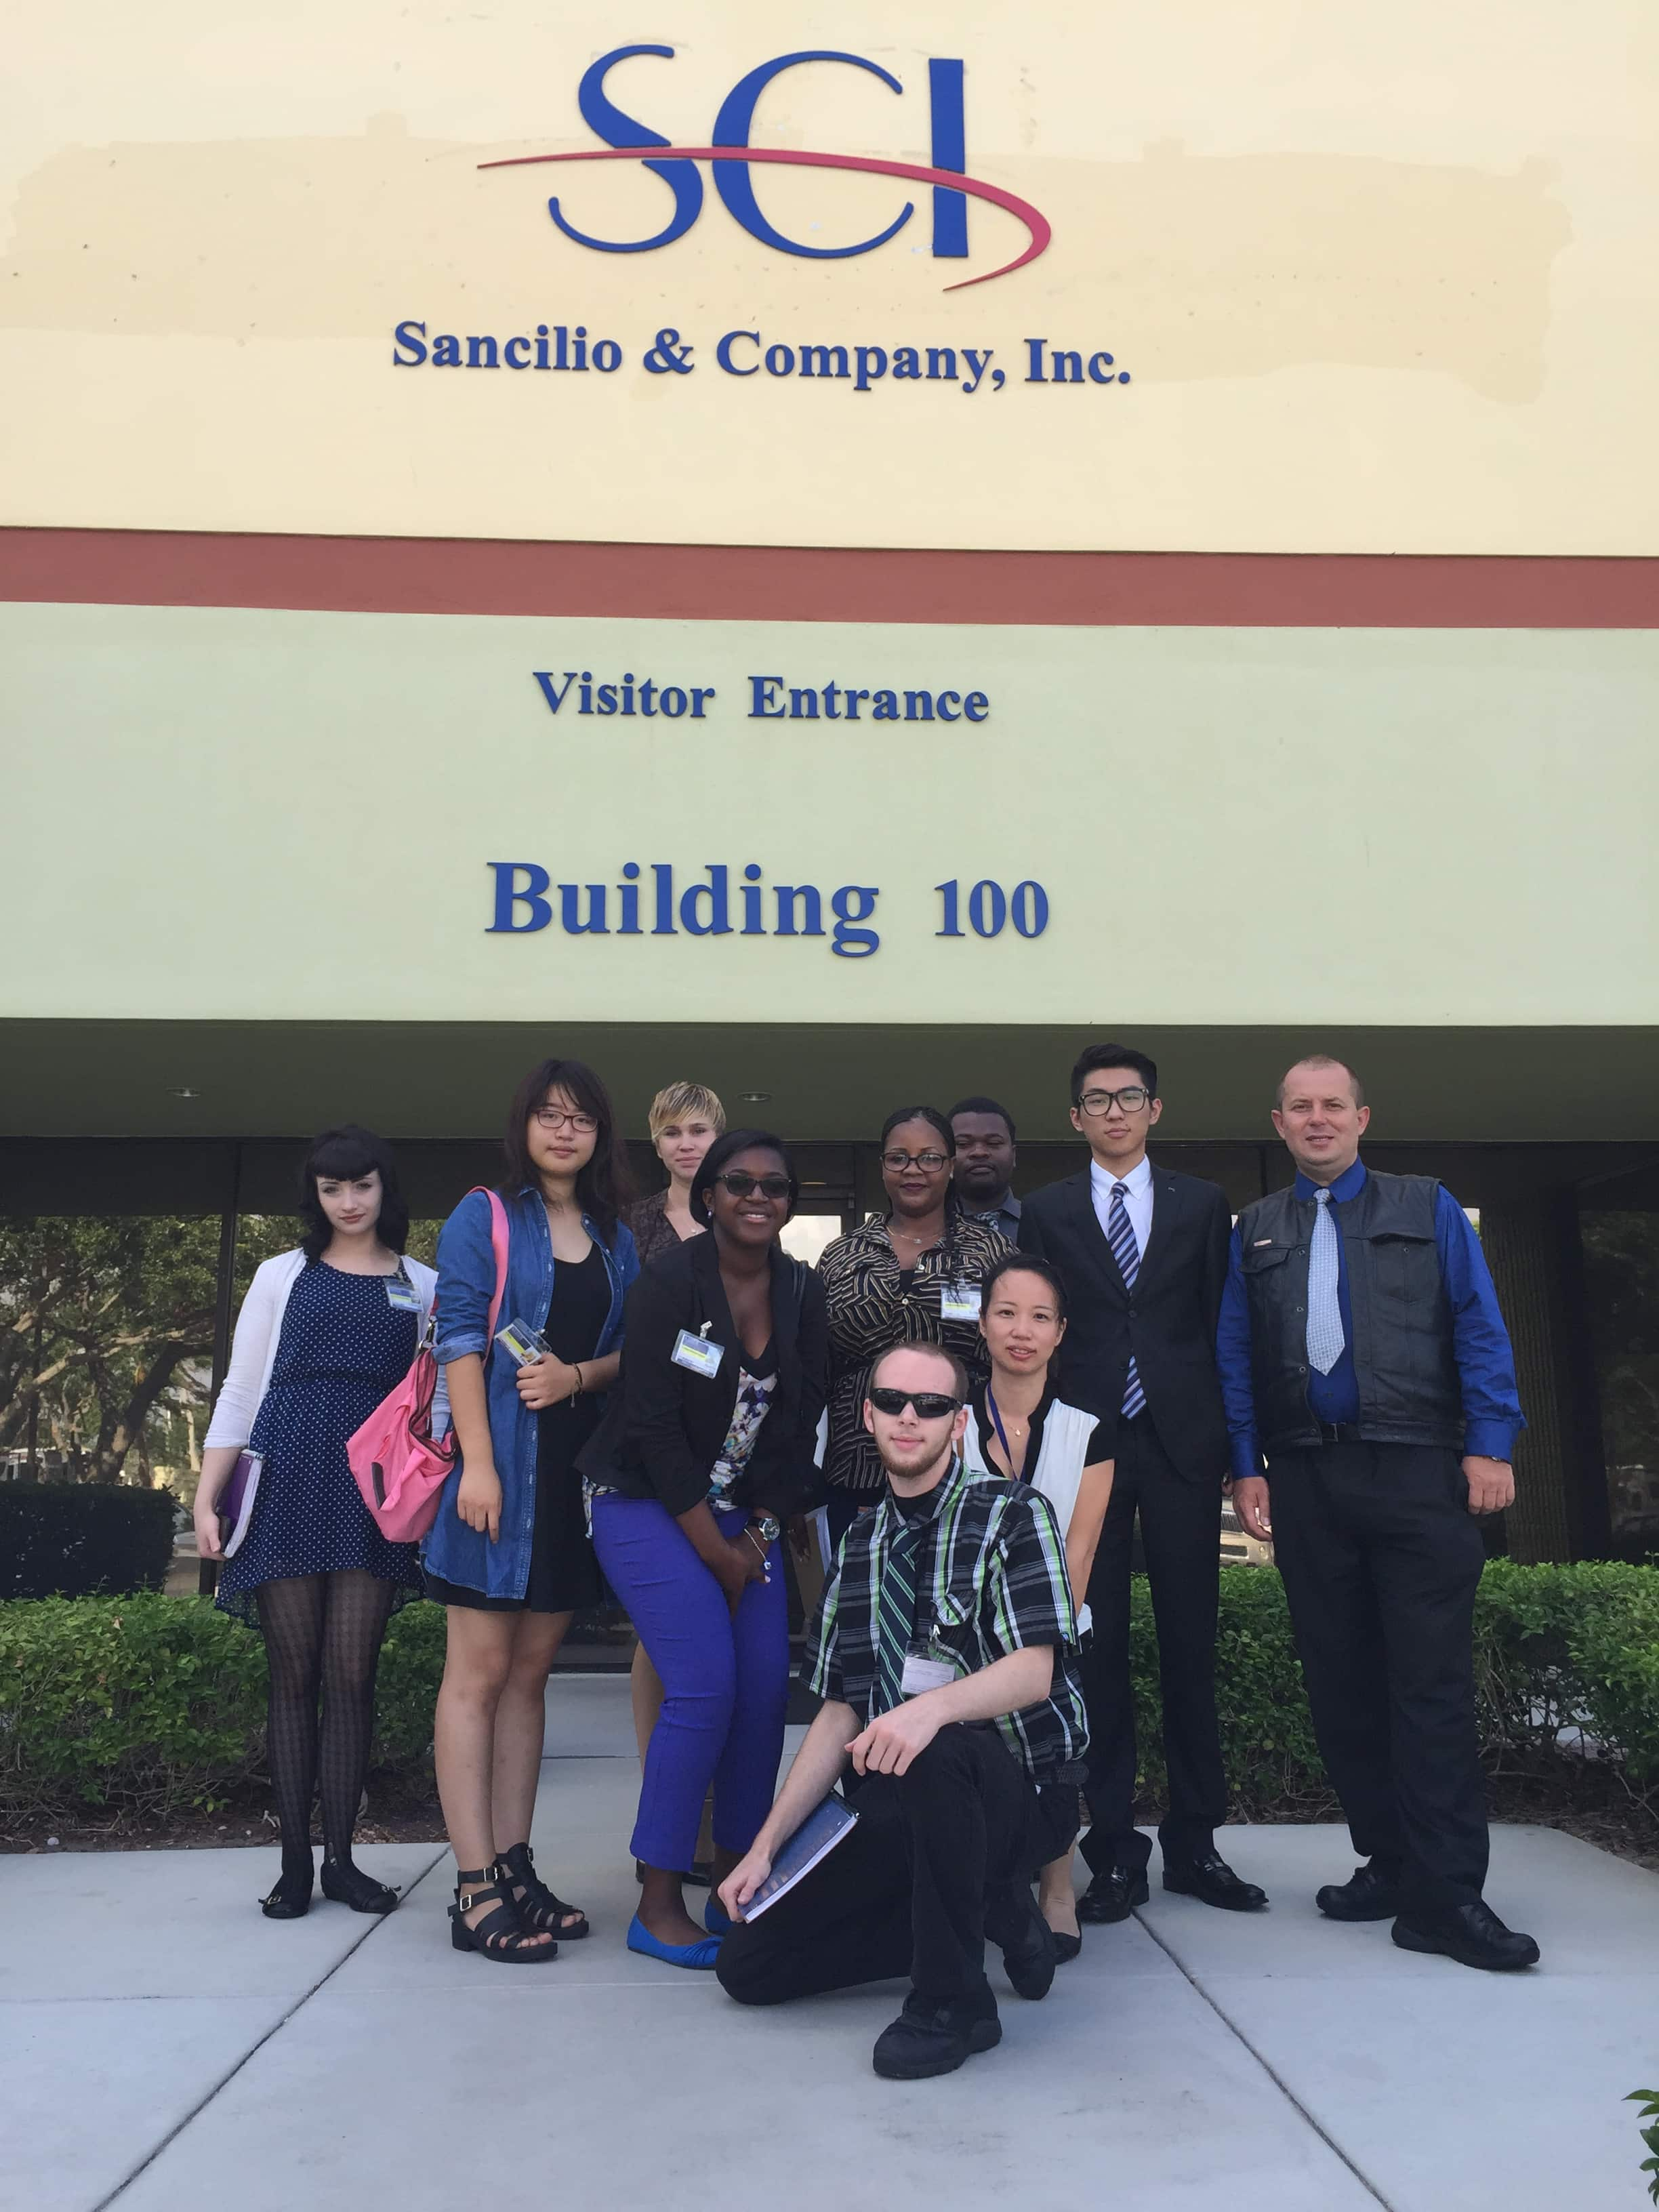 Students from the West Palm Beach Campus Tour Sancilo & Company, Inc.